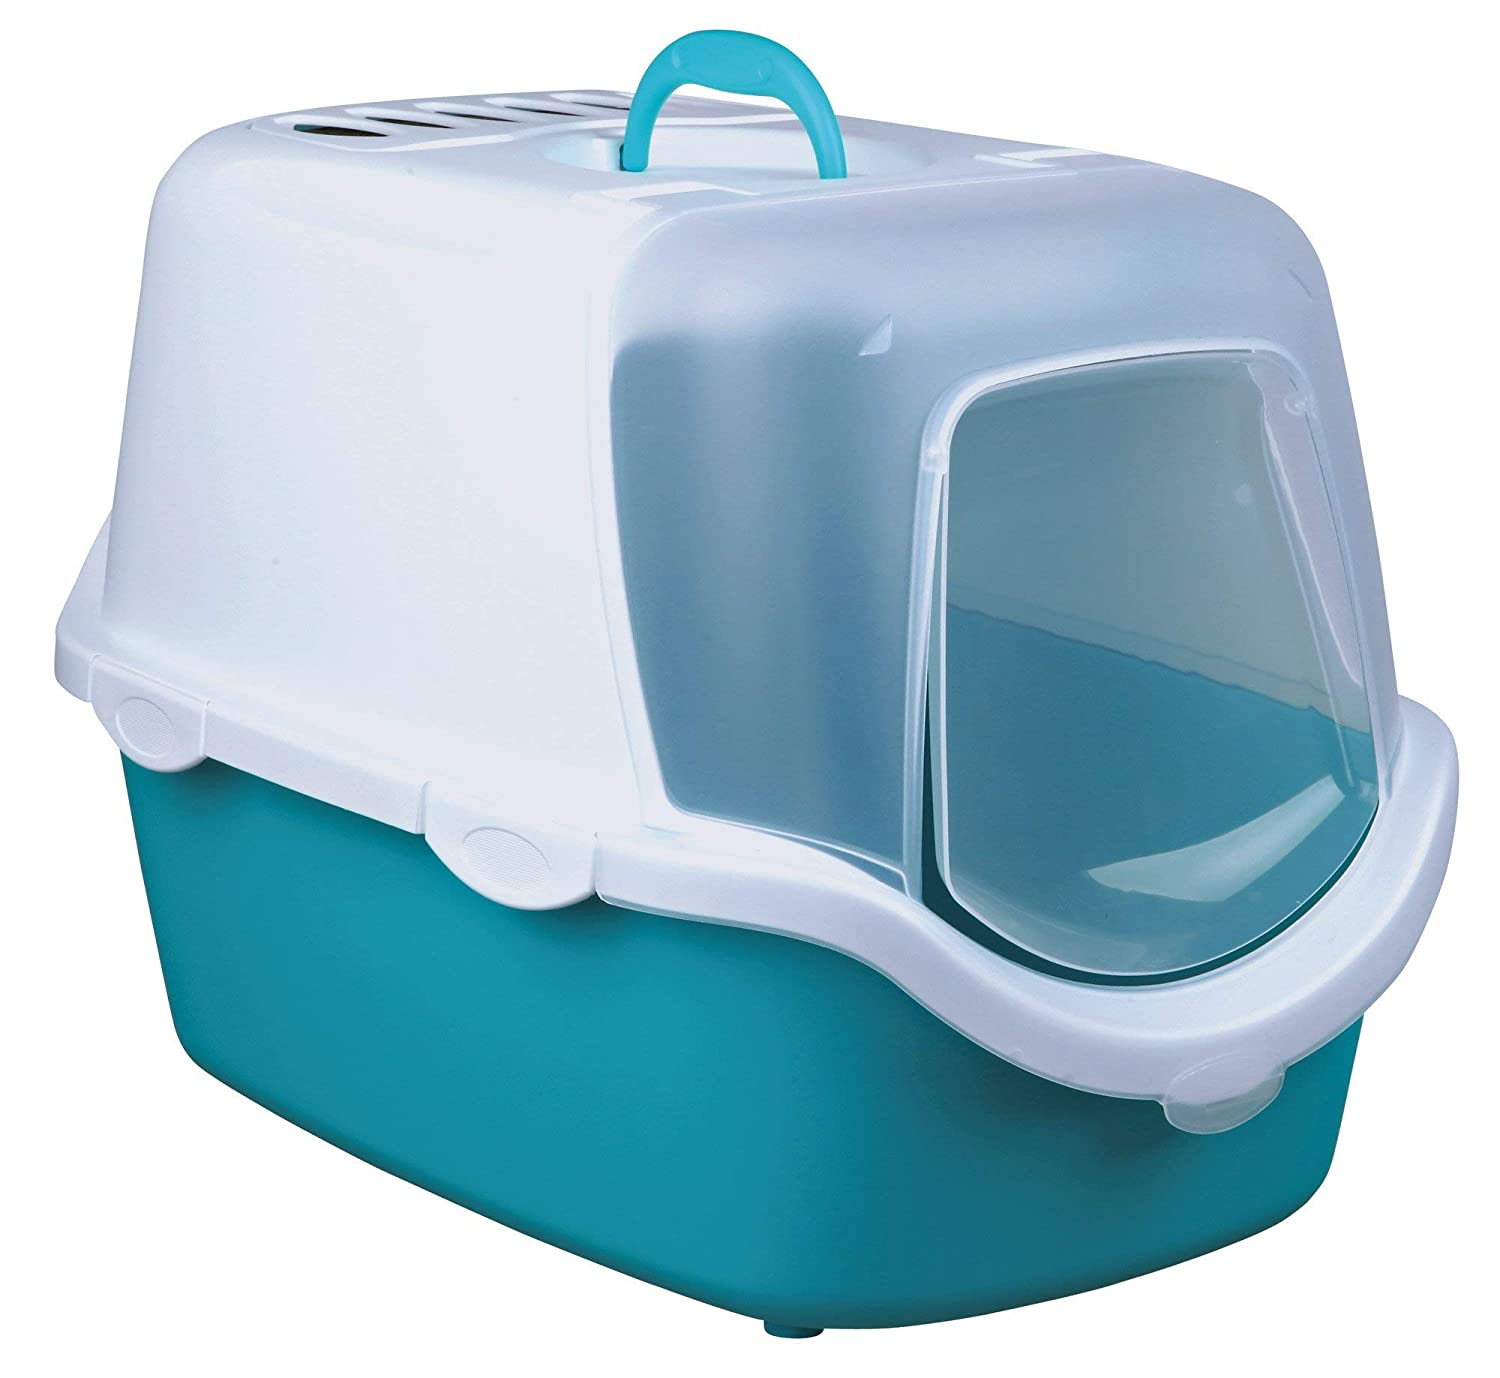 Amazon.com : Trixie Vico Aquamarine/White Hooded Litter Tray : Pet Supplies